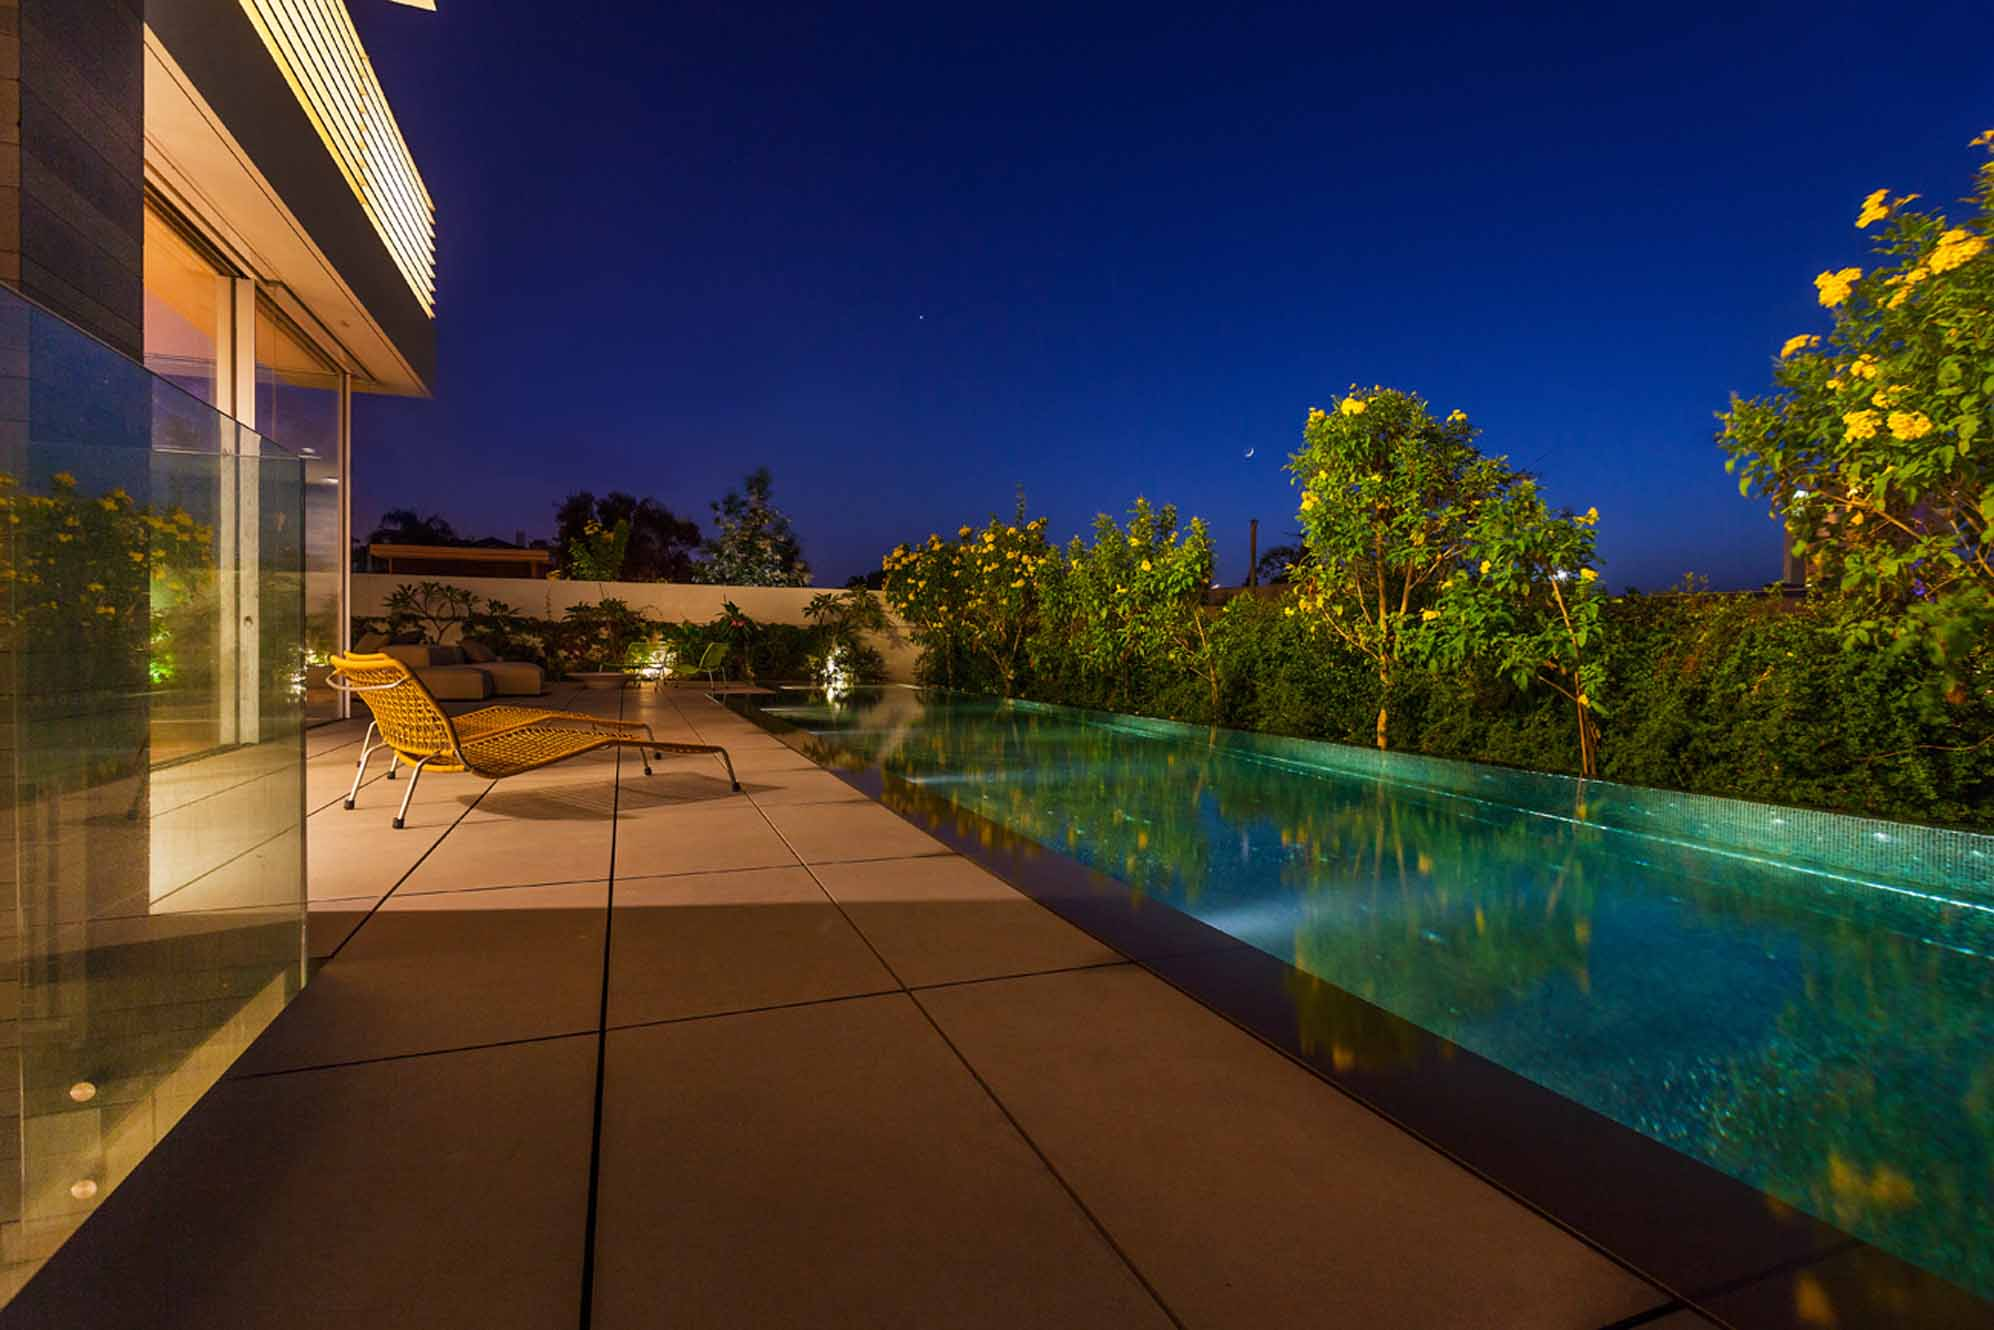 Additional photo for property listing at Contemporary Modern Villa in Herzila Pituah    4664705 Israel